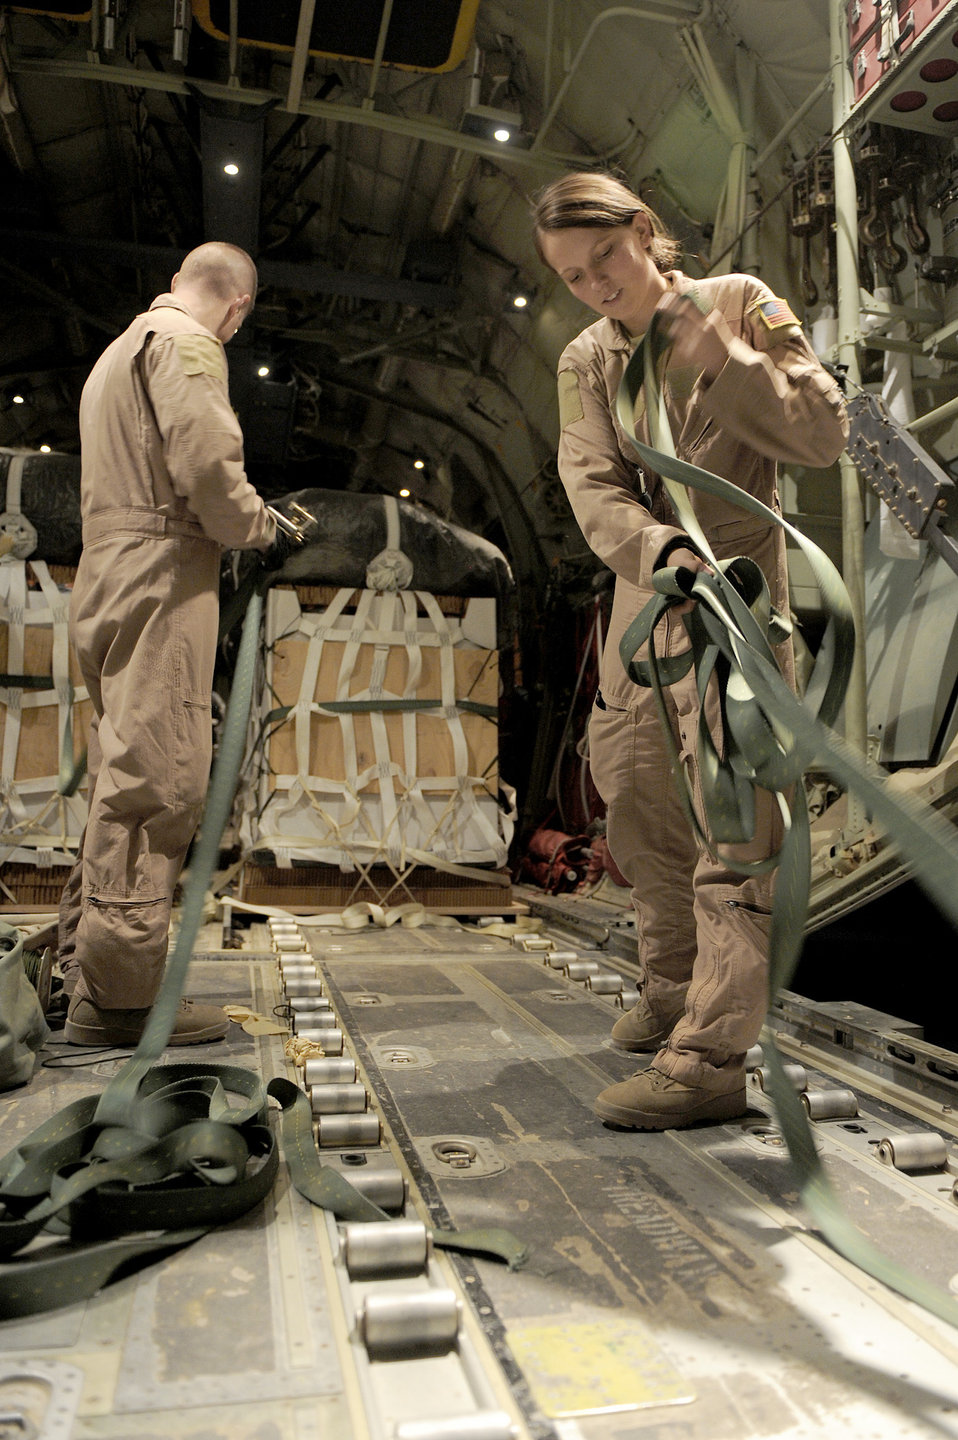 Supplies to remote Afghanistan bases